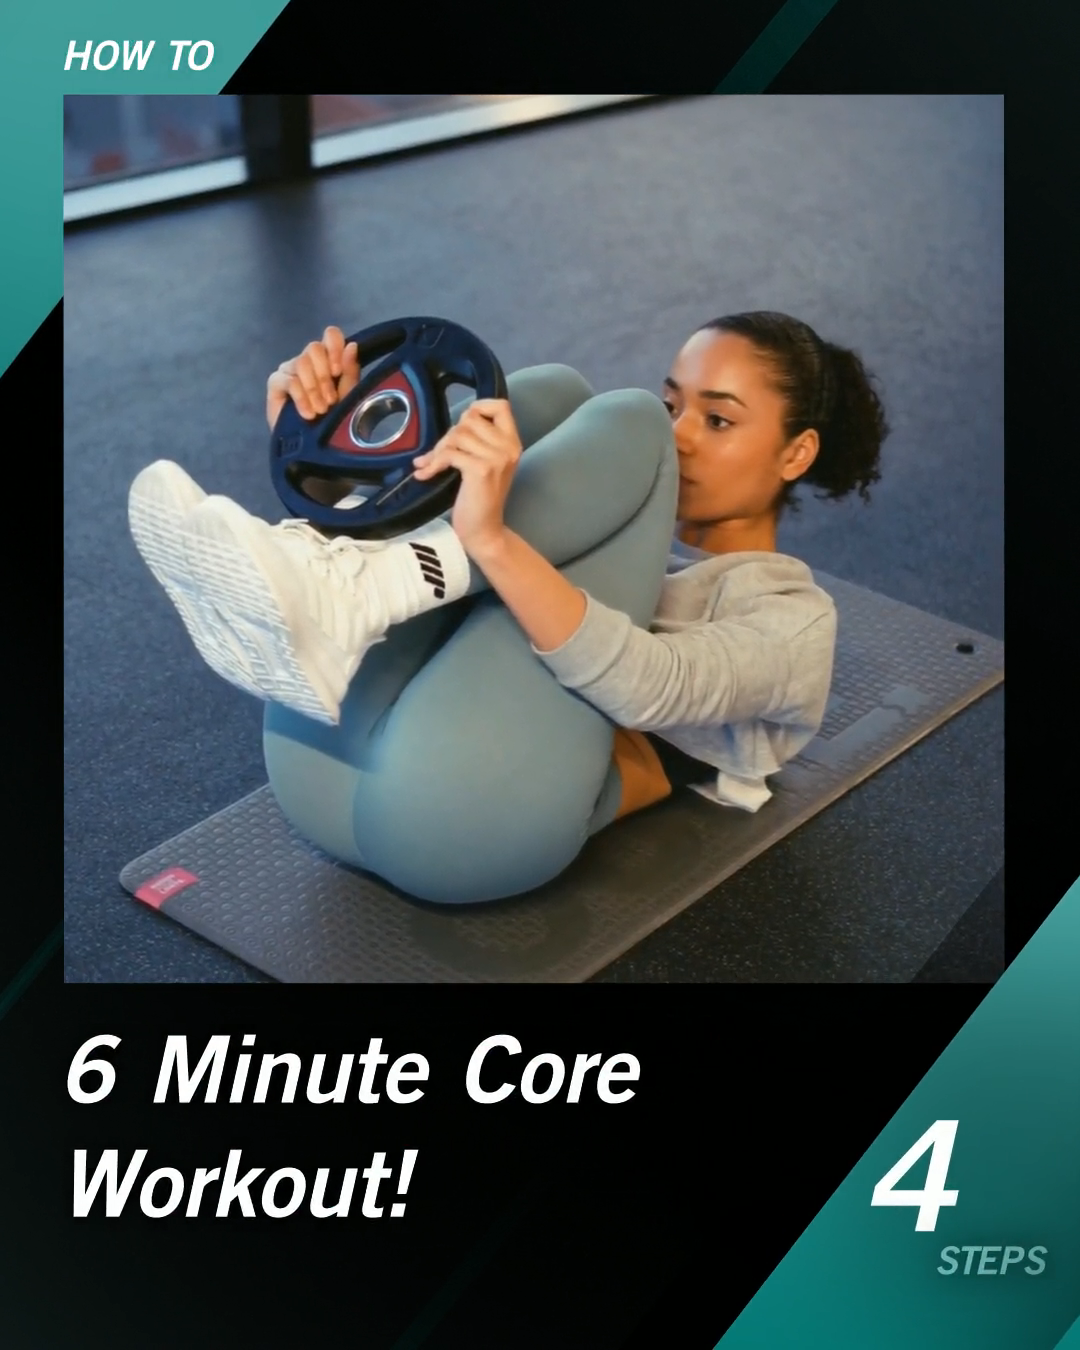 Quick core workout routine. #core #coreworkout #exercisefitness #absworkout #fitness #fitnessgyms